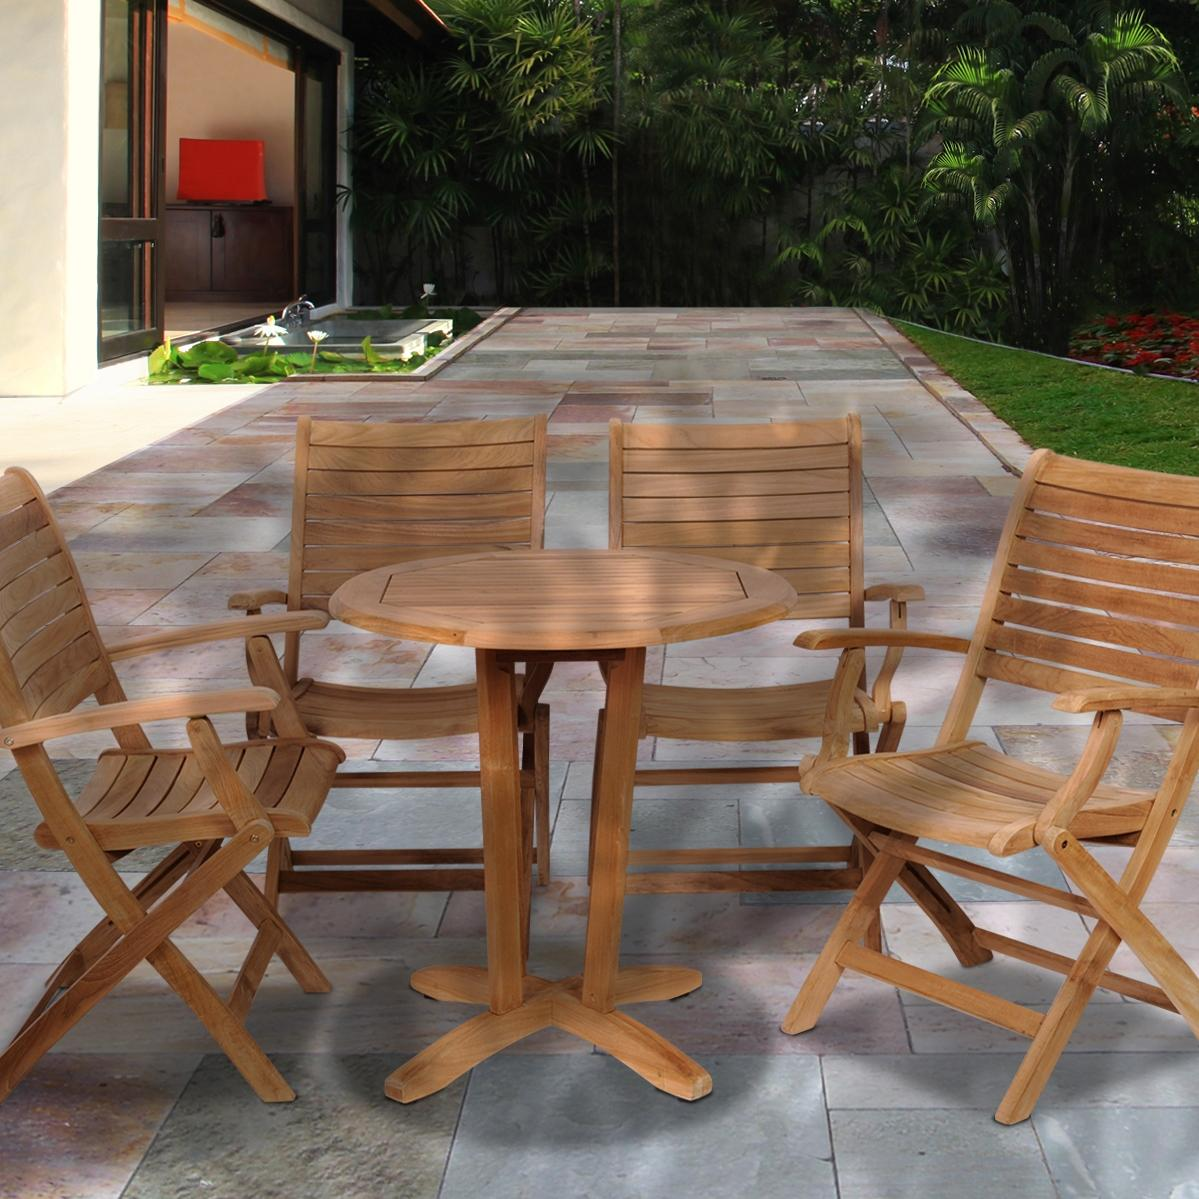 Amazonia Teak Aruba 4-person Teak Patio Dining Set With Folding Chairs